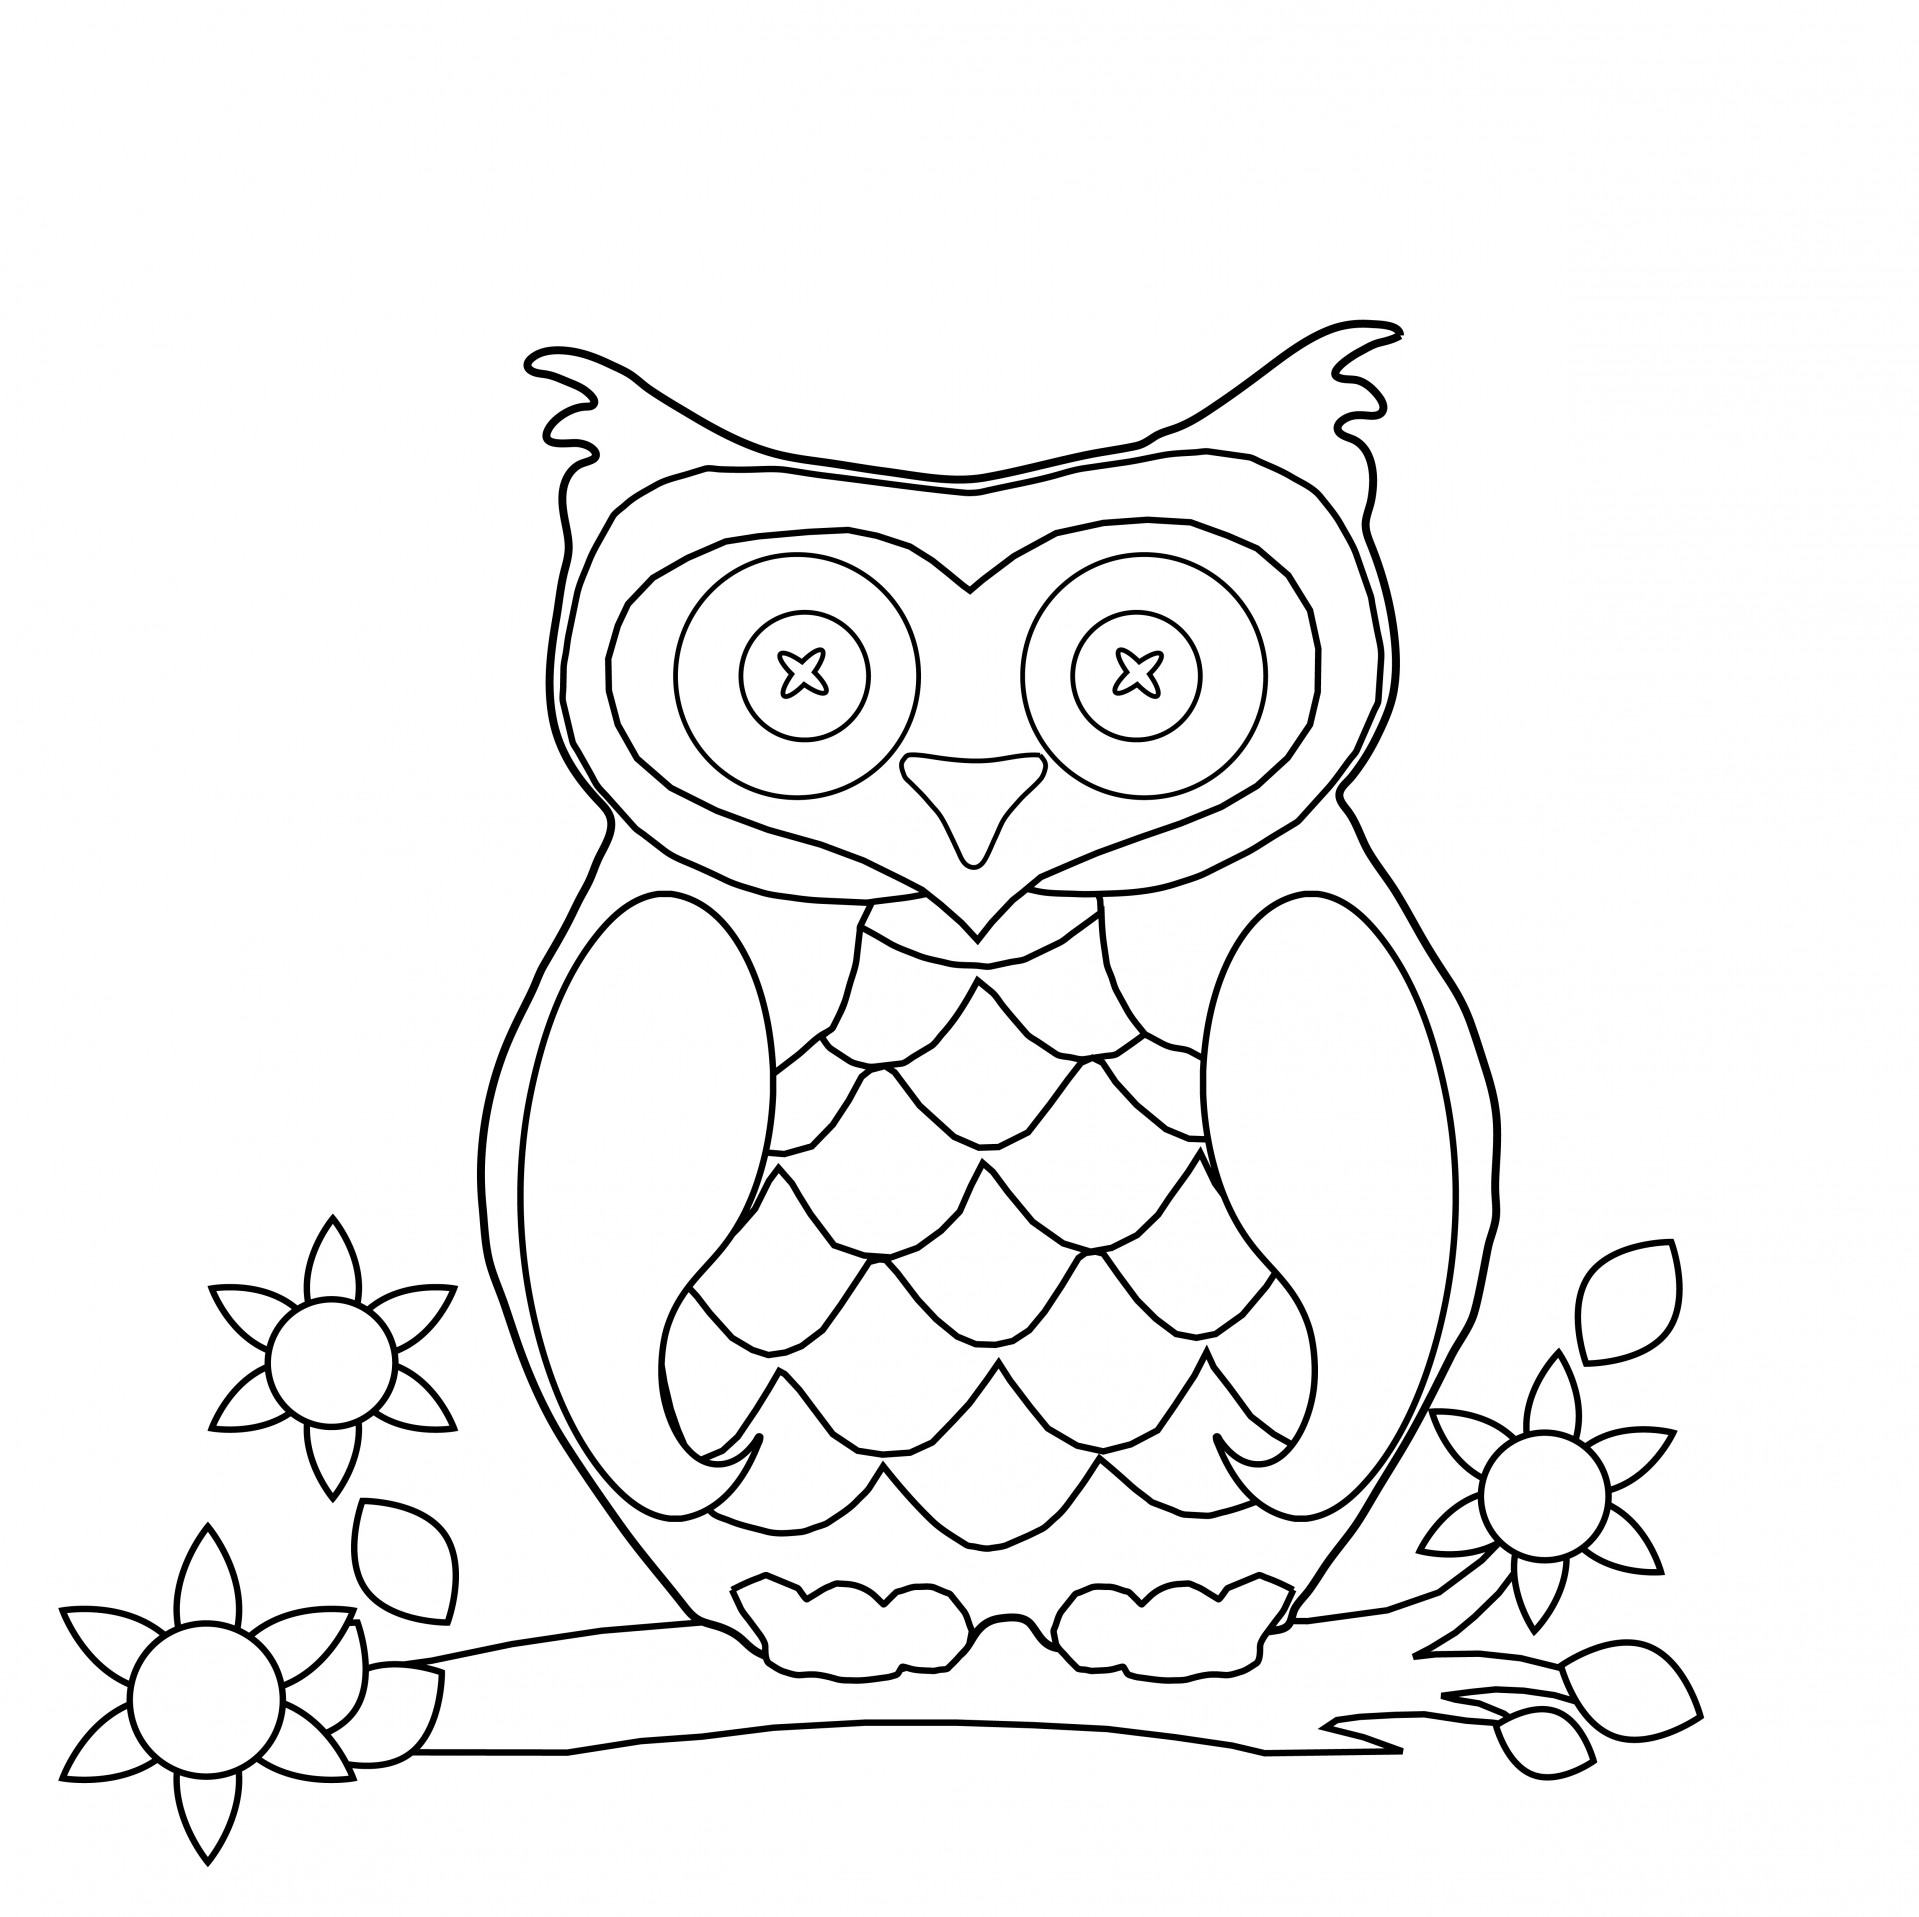 clipart for coloring cute turtle coloring page free clip art clipart coloring for